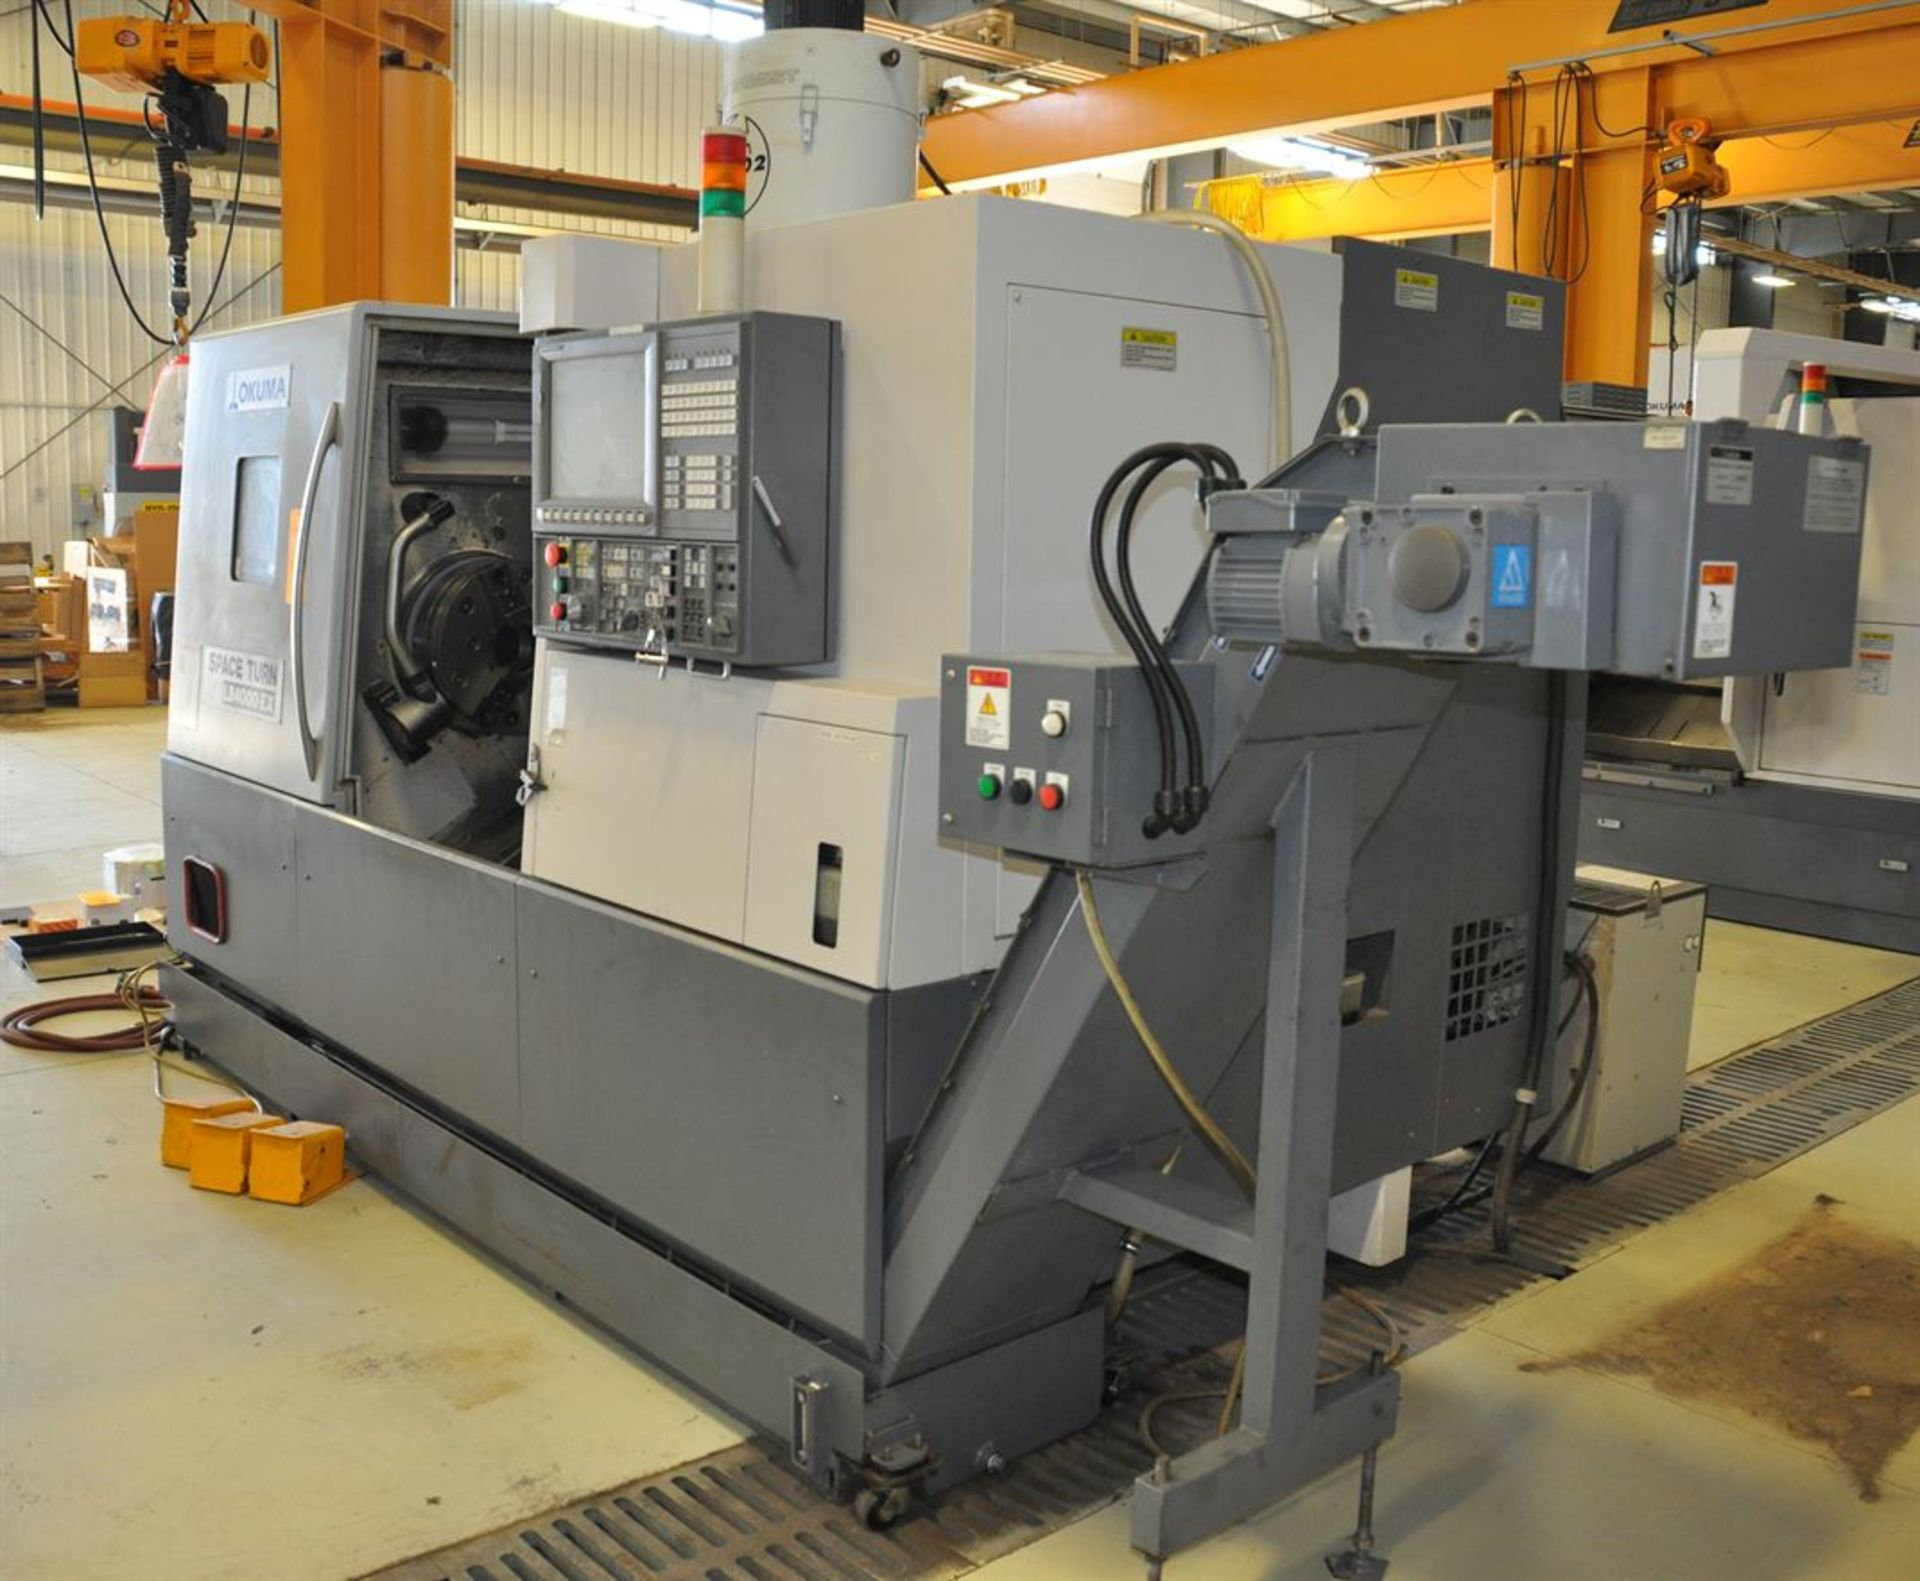 "2012 OKUMA SPACE TURN LB4000 EX Turning Center, s/n 163014, w/ OSP-P200LA Control, 3.5"" Bore, SCHUNK - Image 6 of 8"